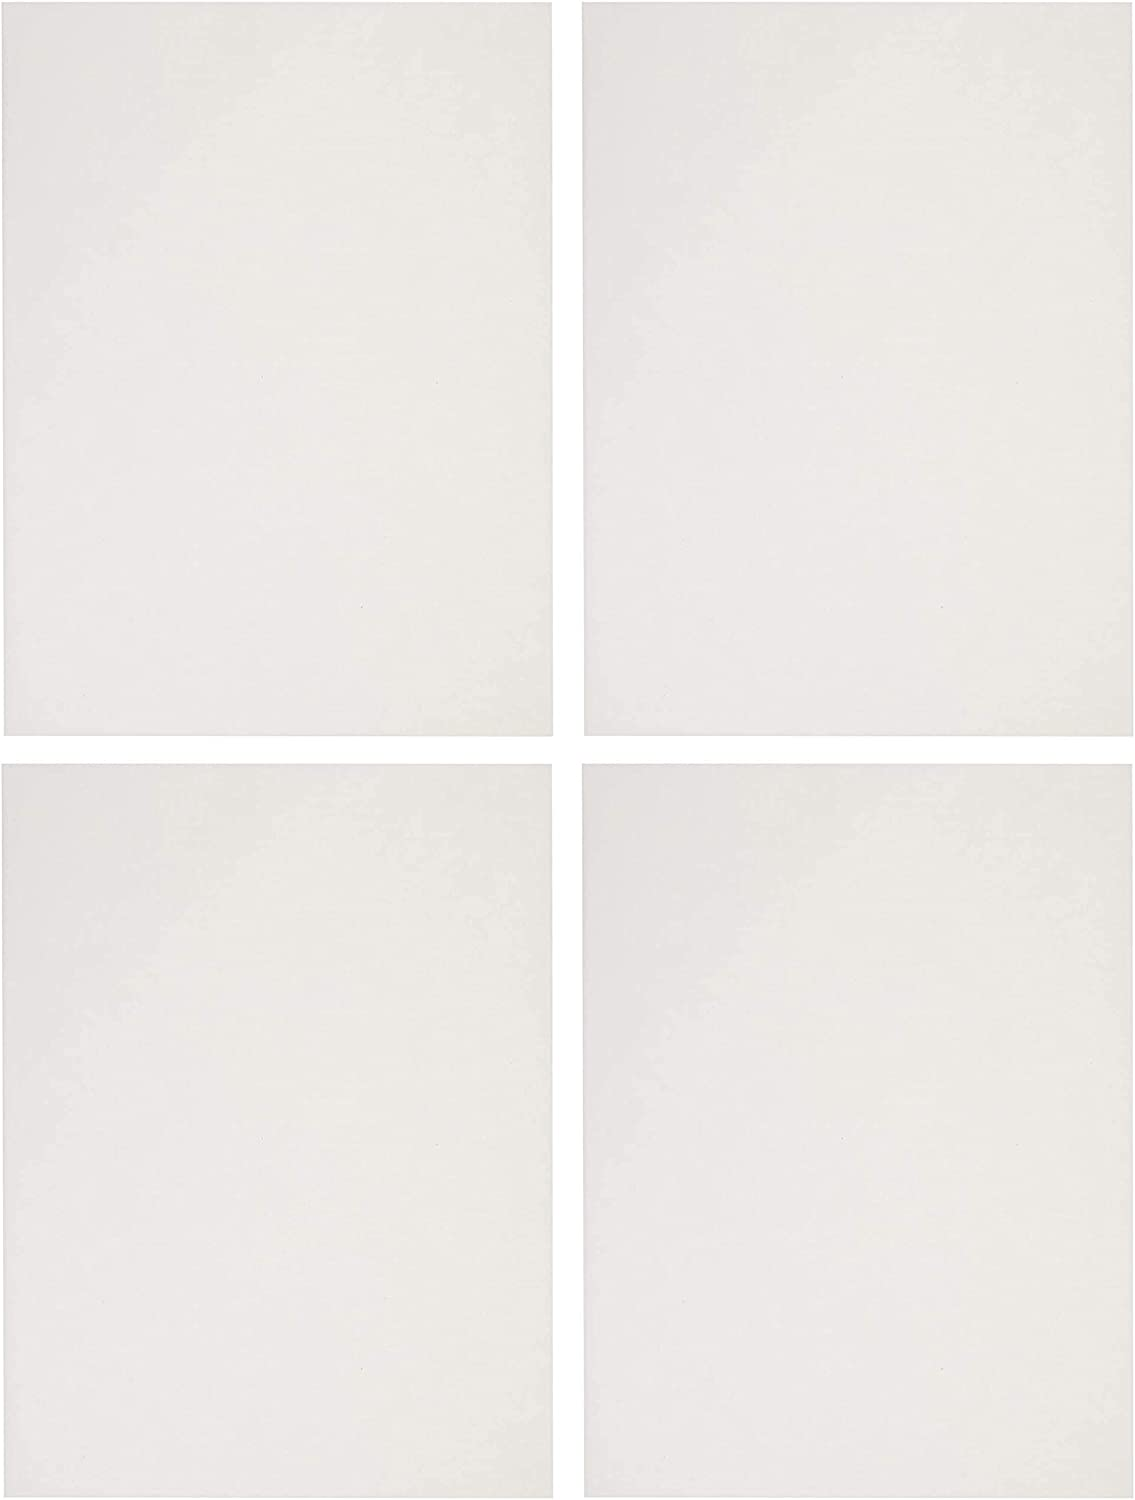 Extra-White 90 lb 9 x 12 Inches Sax Sulphite Drawing Paper Pack of 500